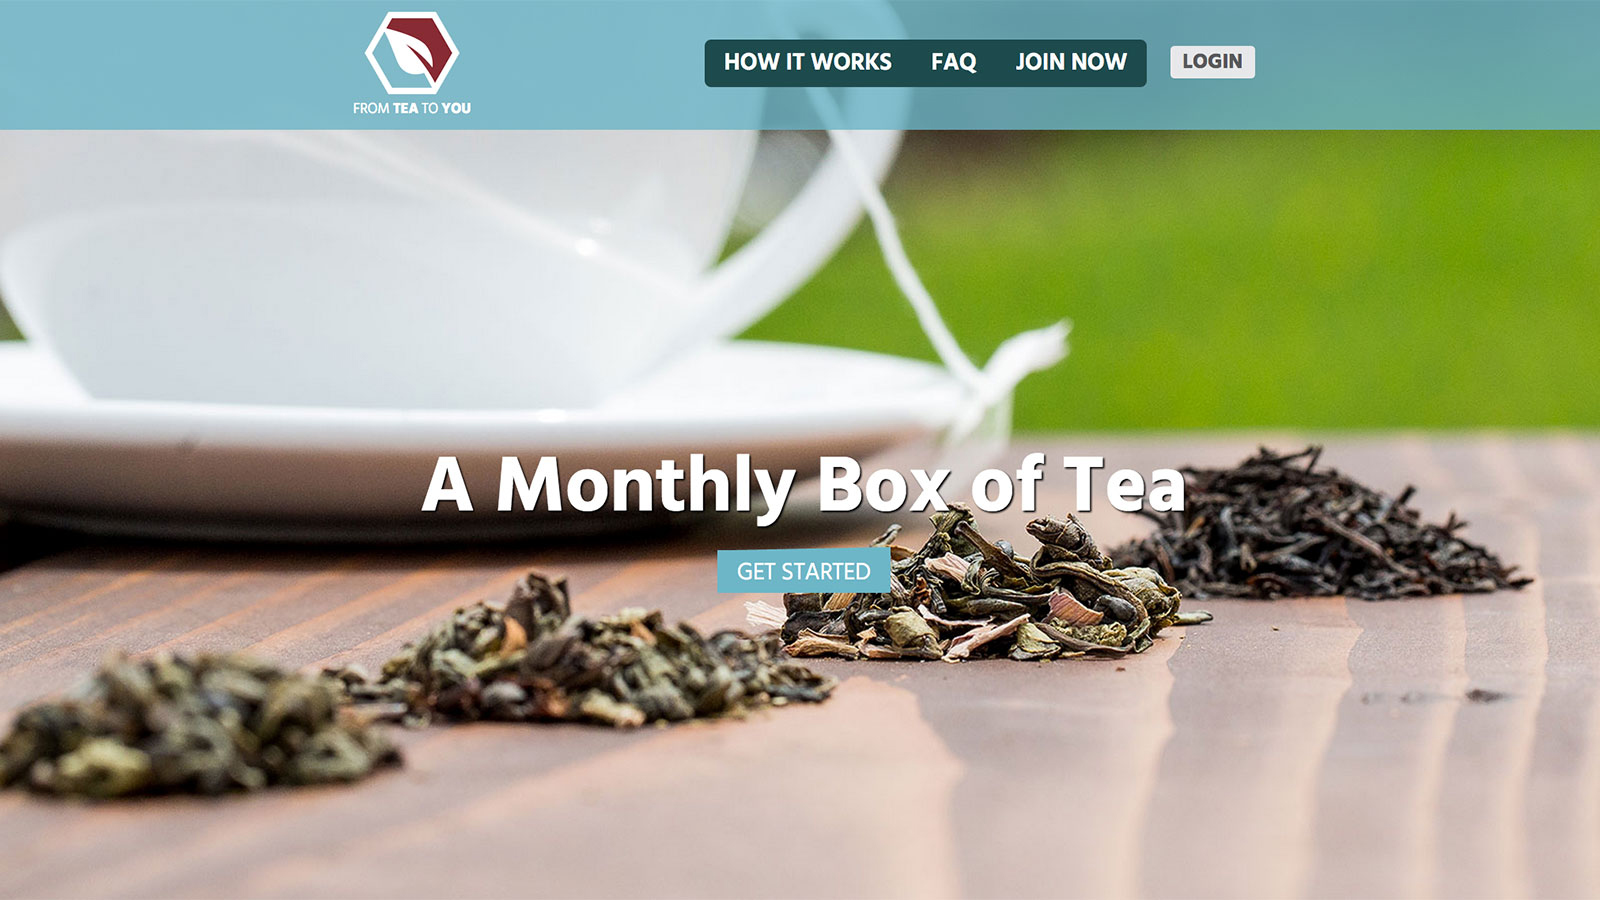 ecommerce web design and development desktop screenshot of FromTeaToYou